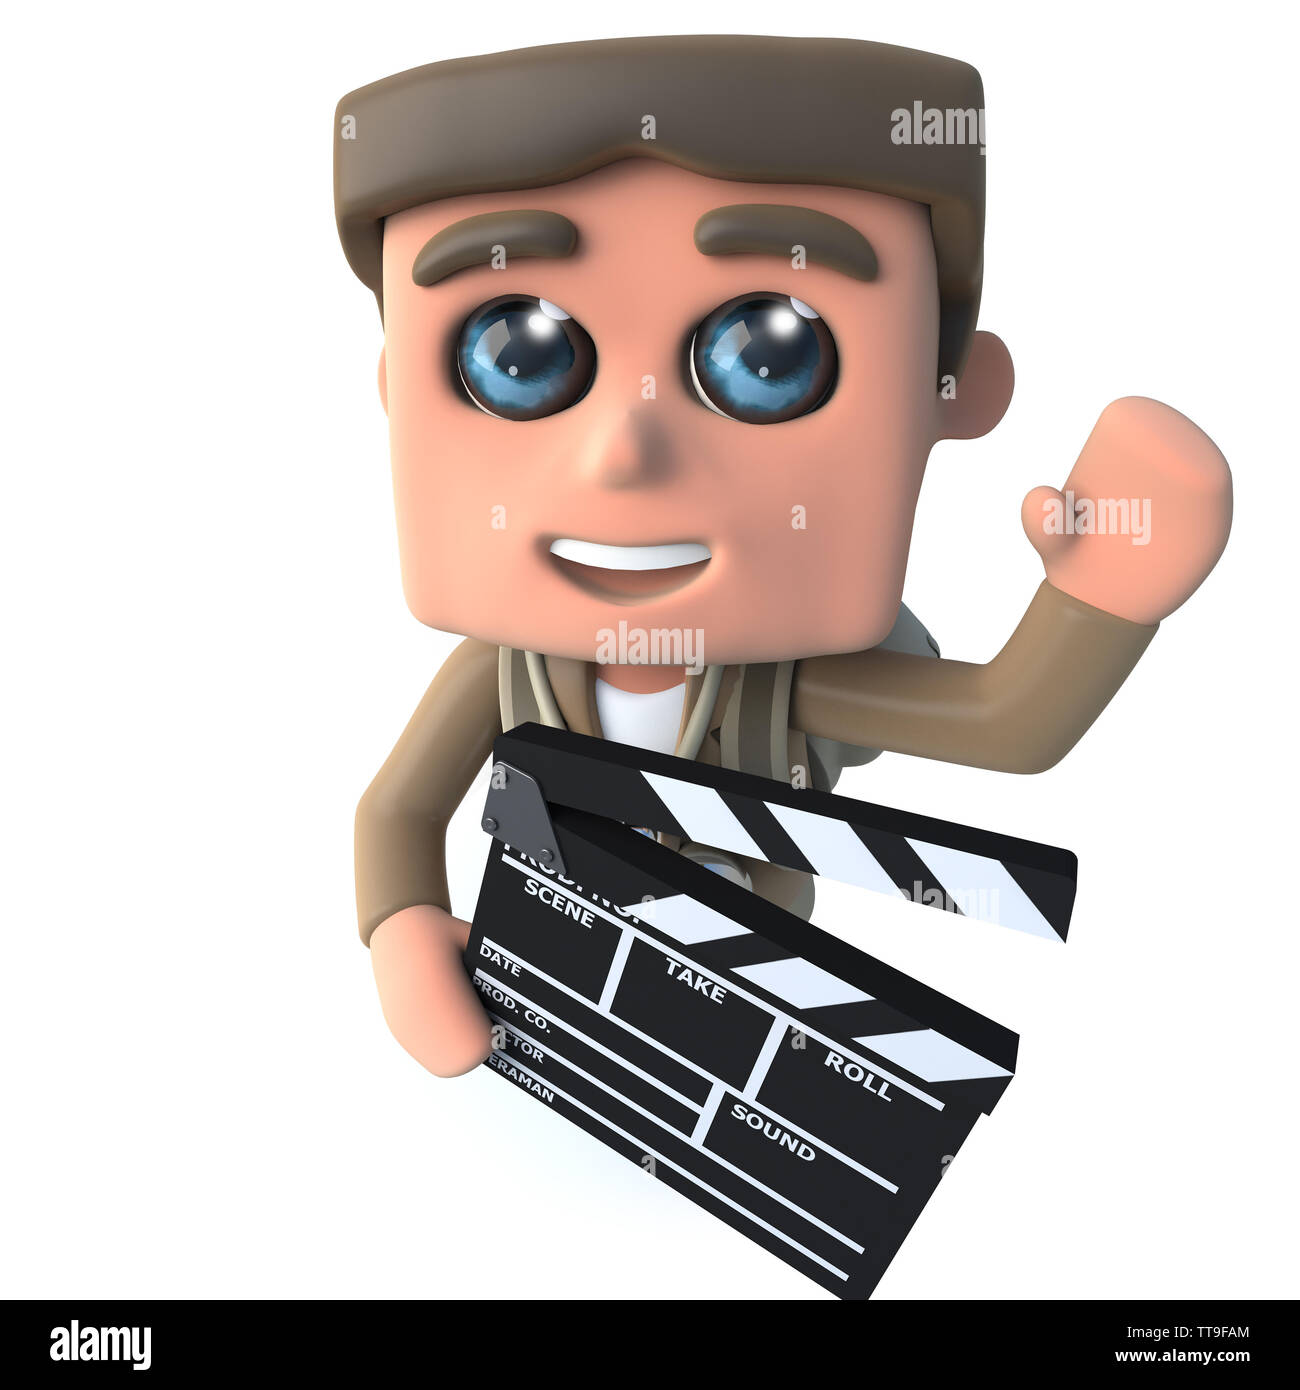 3d render of a funny cartoon hiker adventurer character holding a movie makers film slate clapperboard - Stock Image